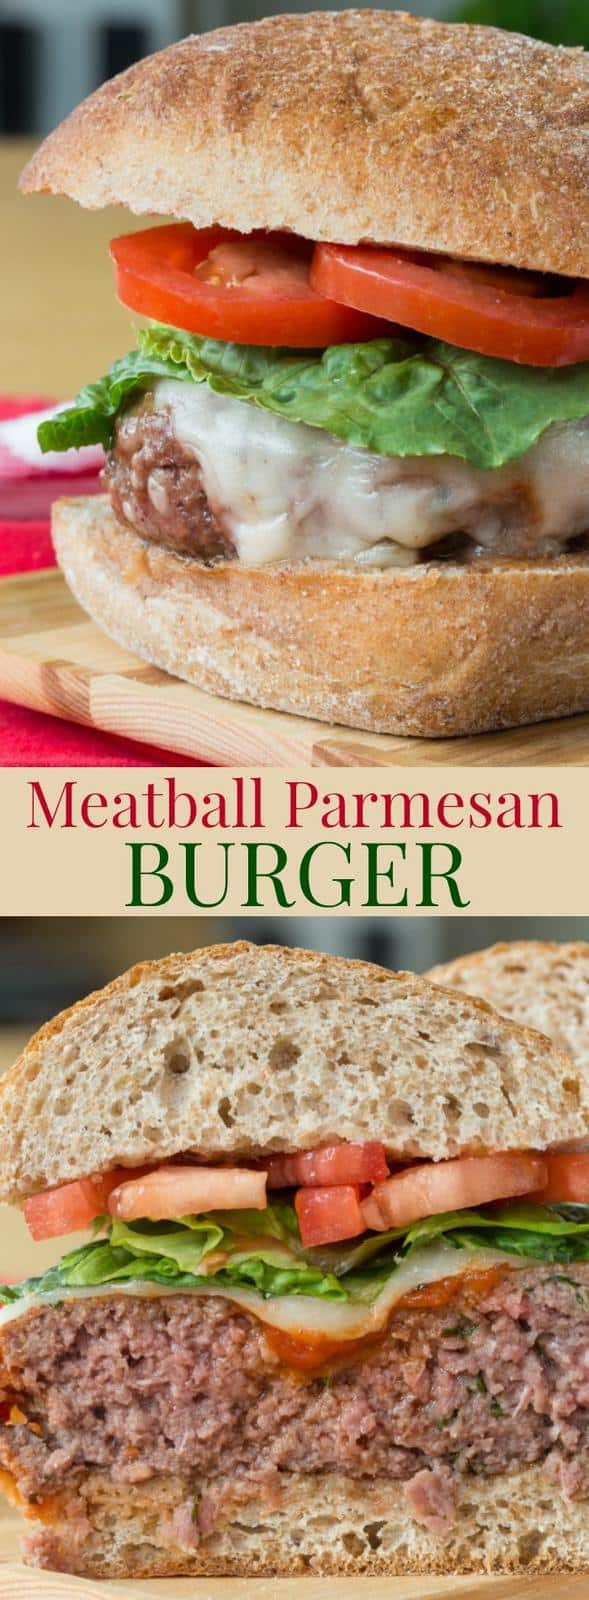 Meatball Parmesan Burgers Low Carb Option Cupcakes